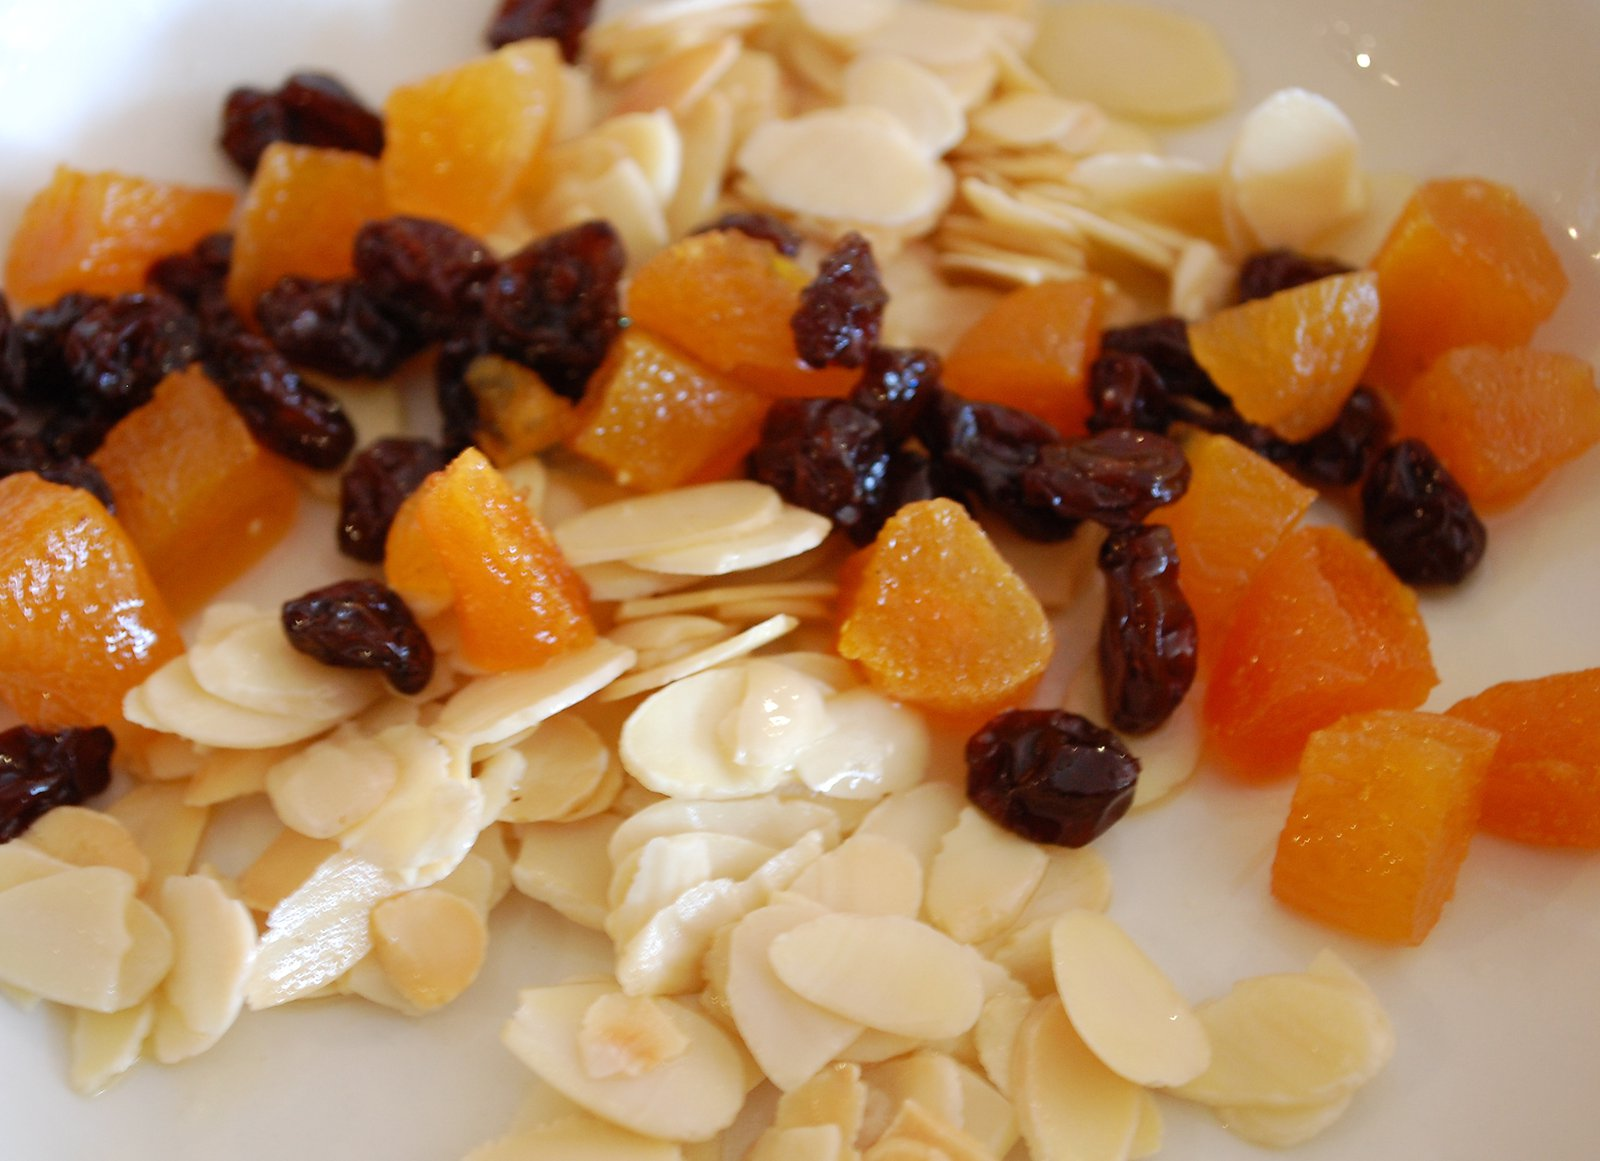 Lightly Fried Almonds, Apricots and Raisins